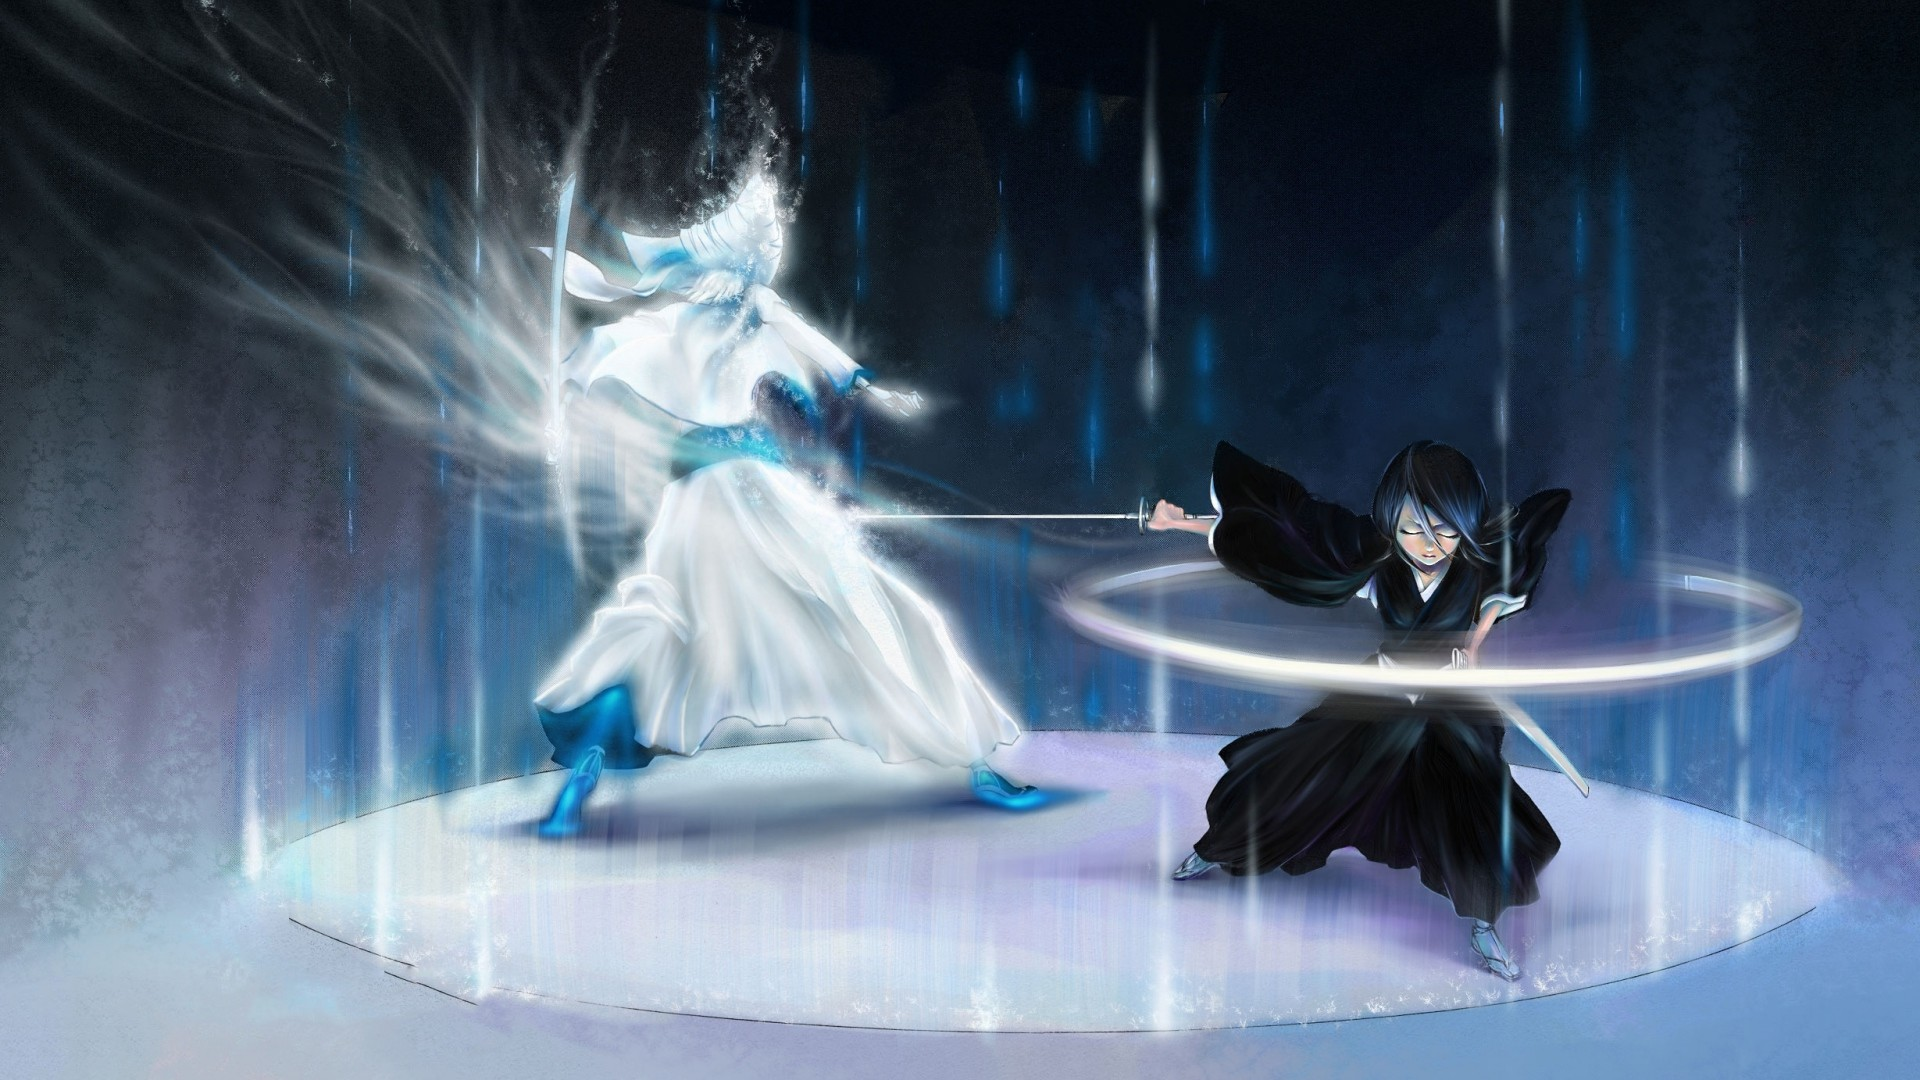 bleach wallpaper 1920 x 1080 - photo #40